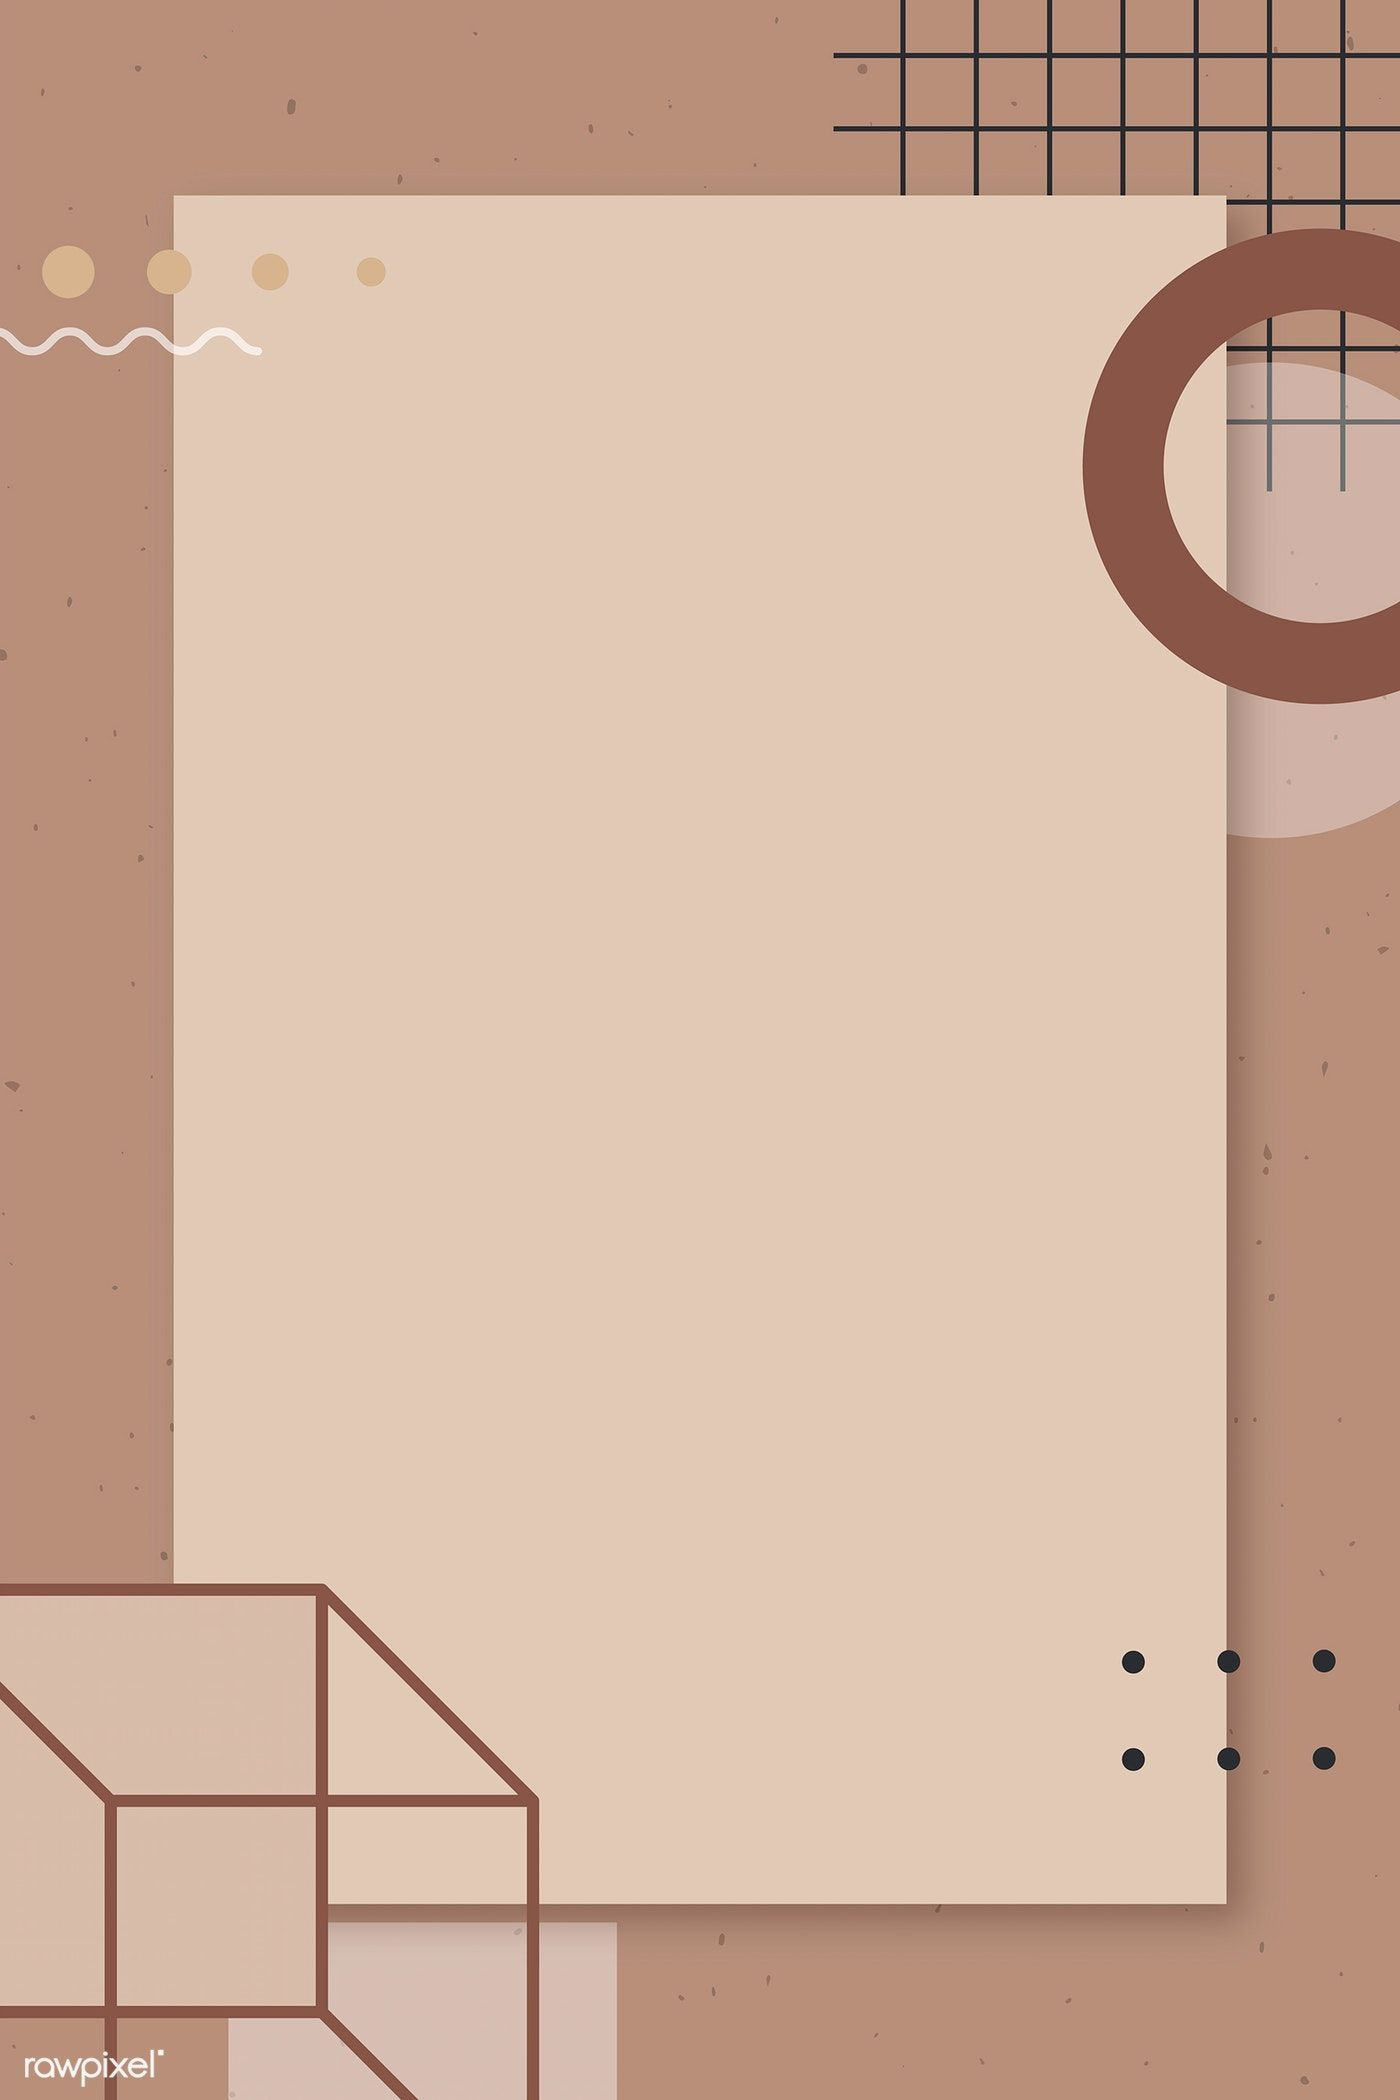 [View 21+] Powerpoint Presentation Template Background Ppt Aesthetic Brown